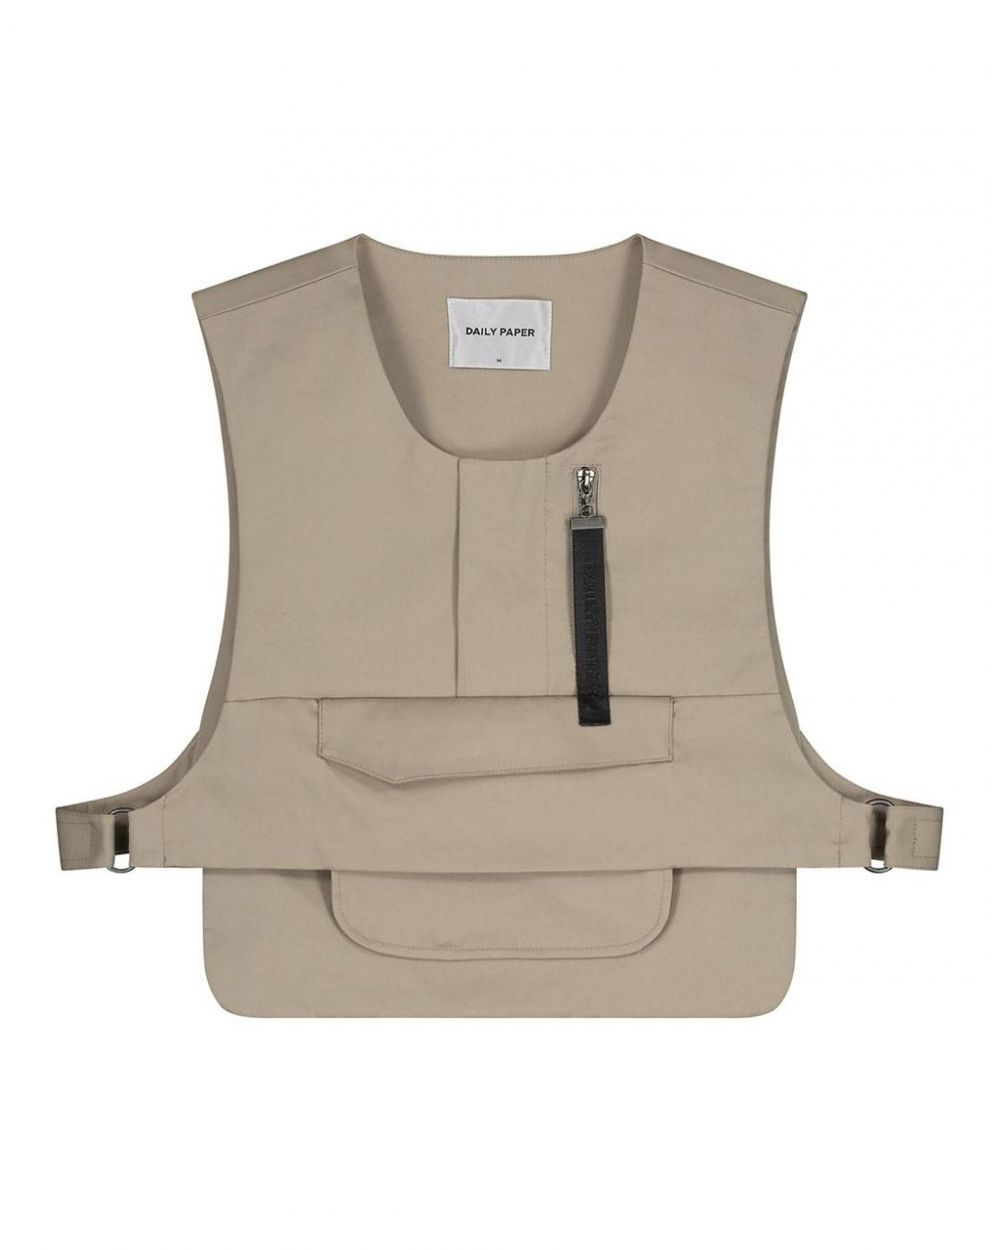 Daily Paper edone vest - sand DAILY PAPER Jacket 125,00 €